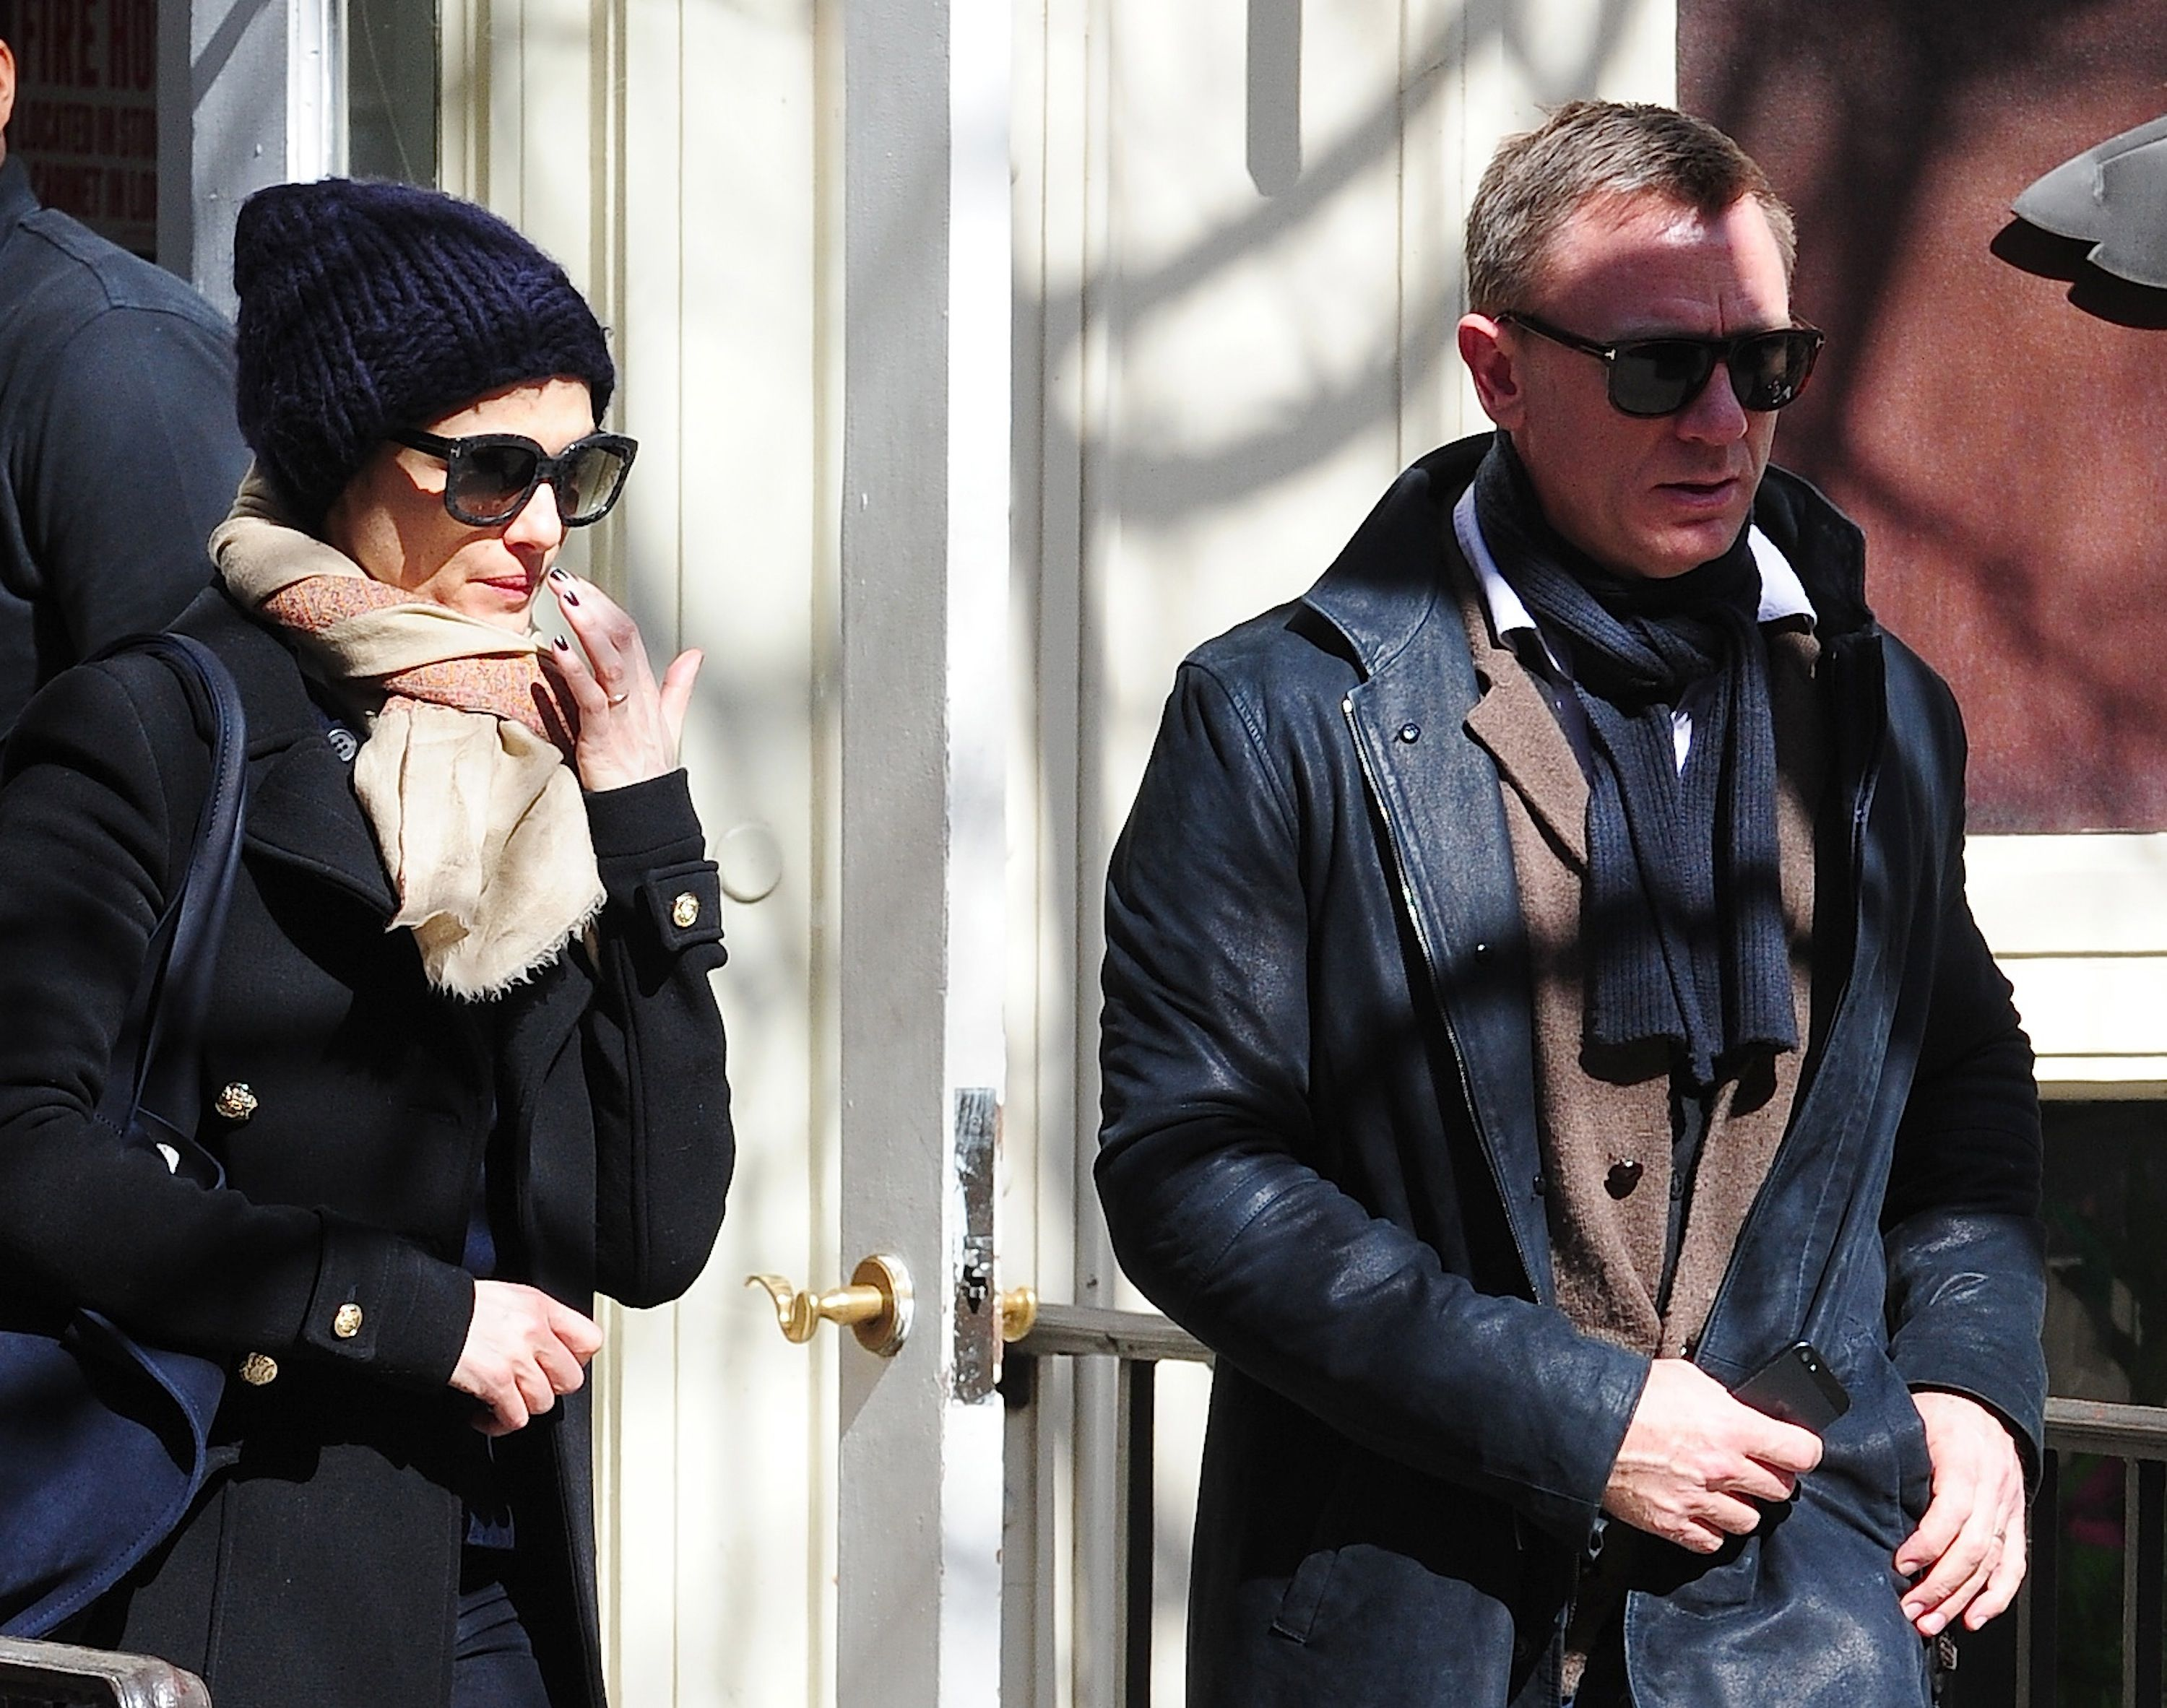 Rachel Weisz and Daniel Craig relationship history from marriage